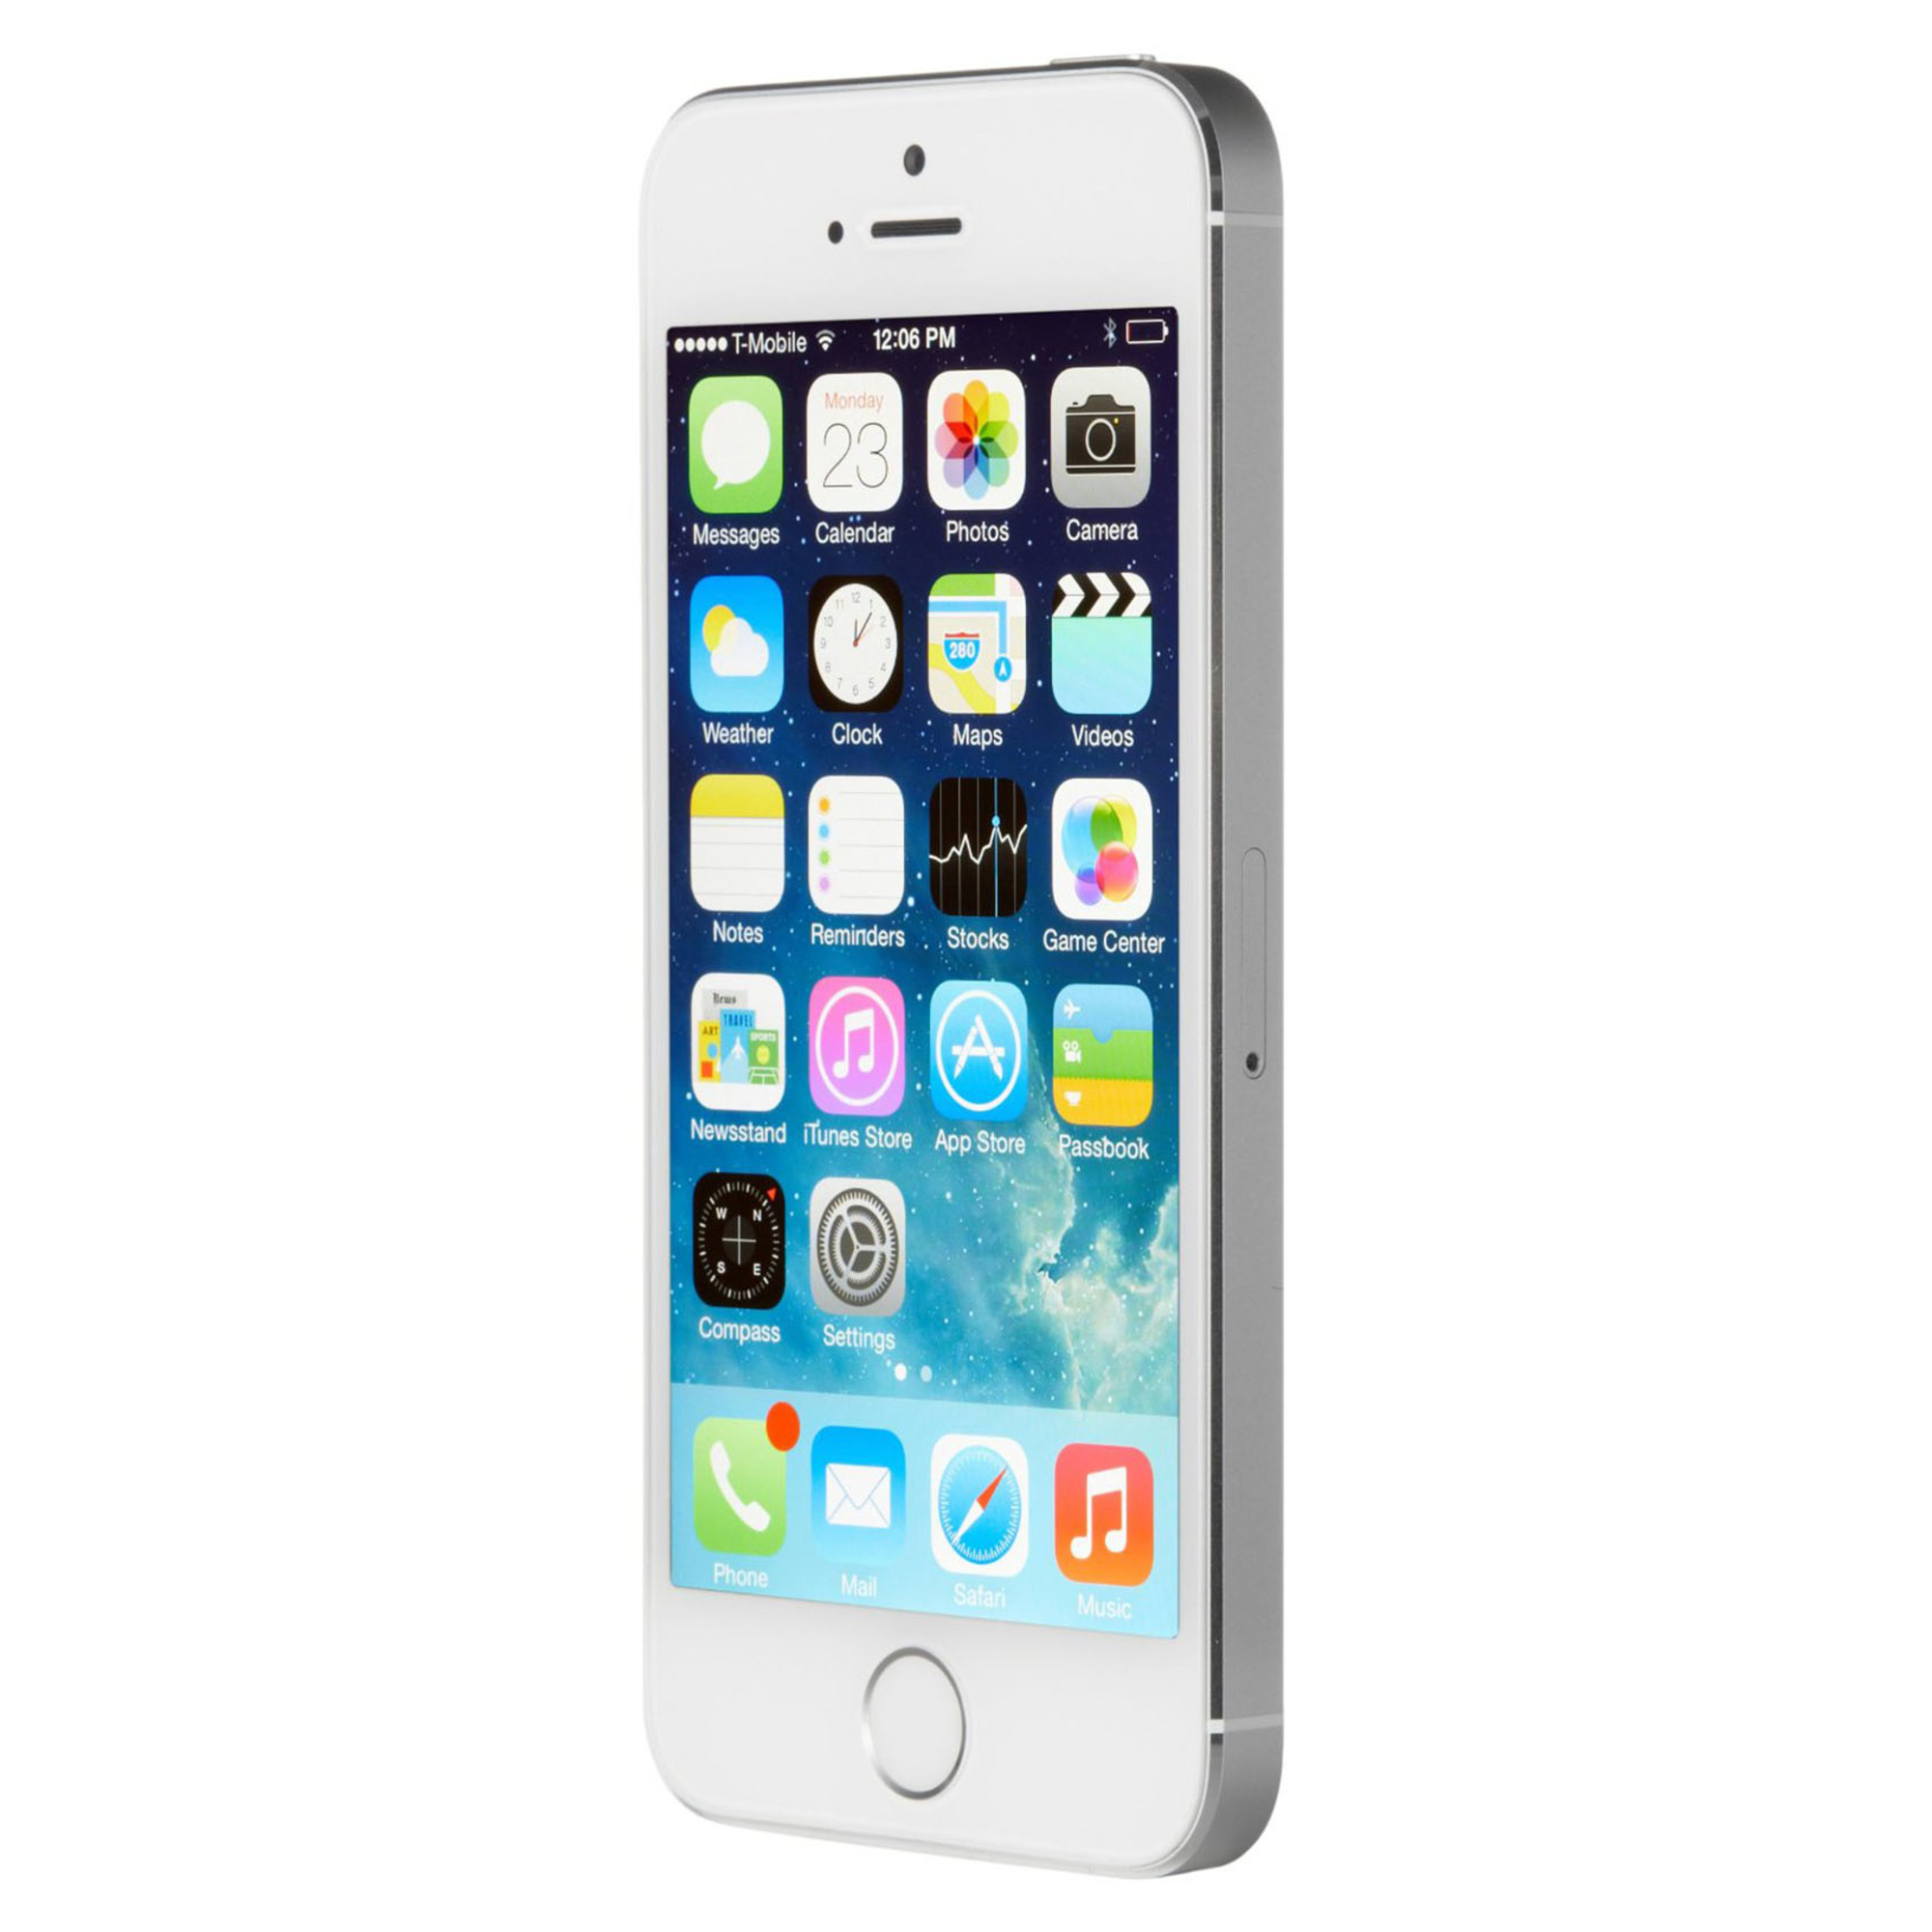 apple iphone 5s 64gb unlocked gsm lte dualcore 8mp phone. Black Bedroom Furniture Sets. Home Design Ideas